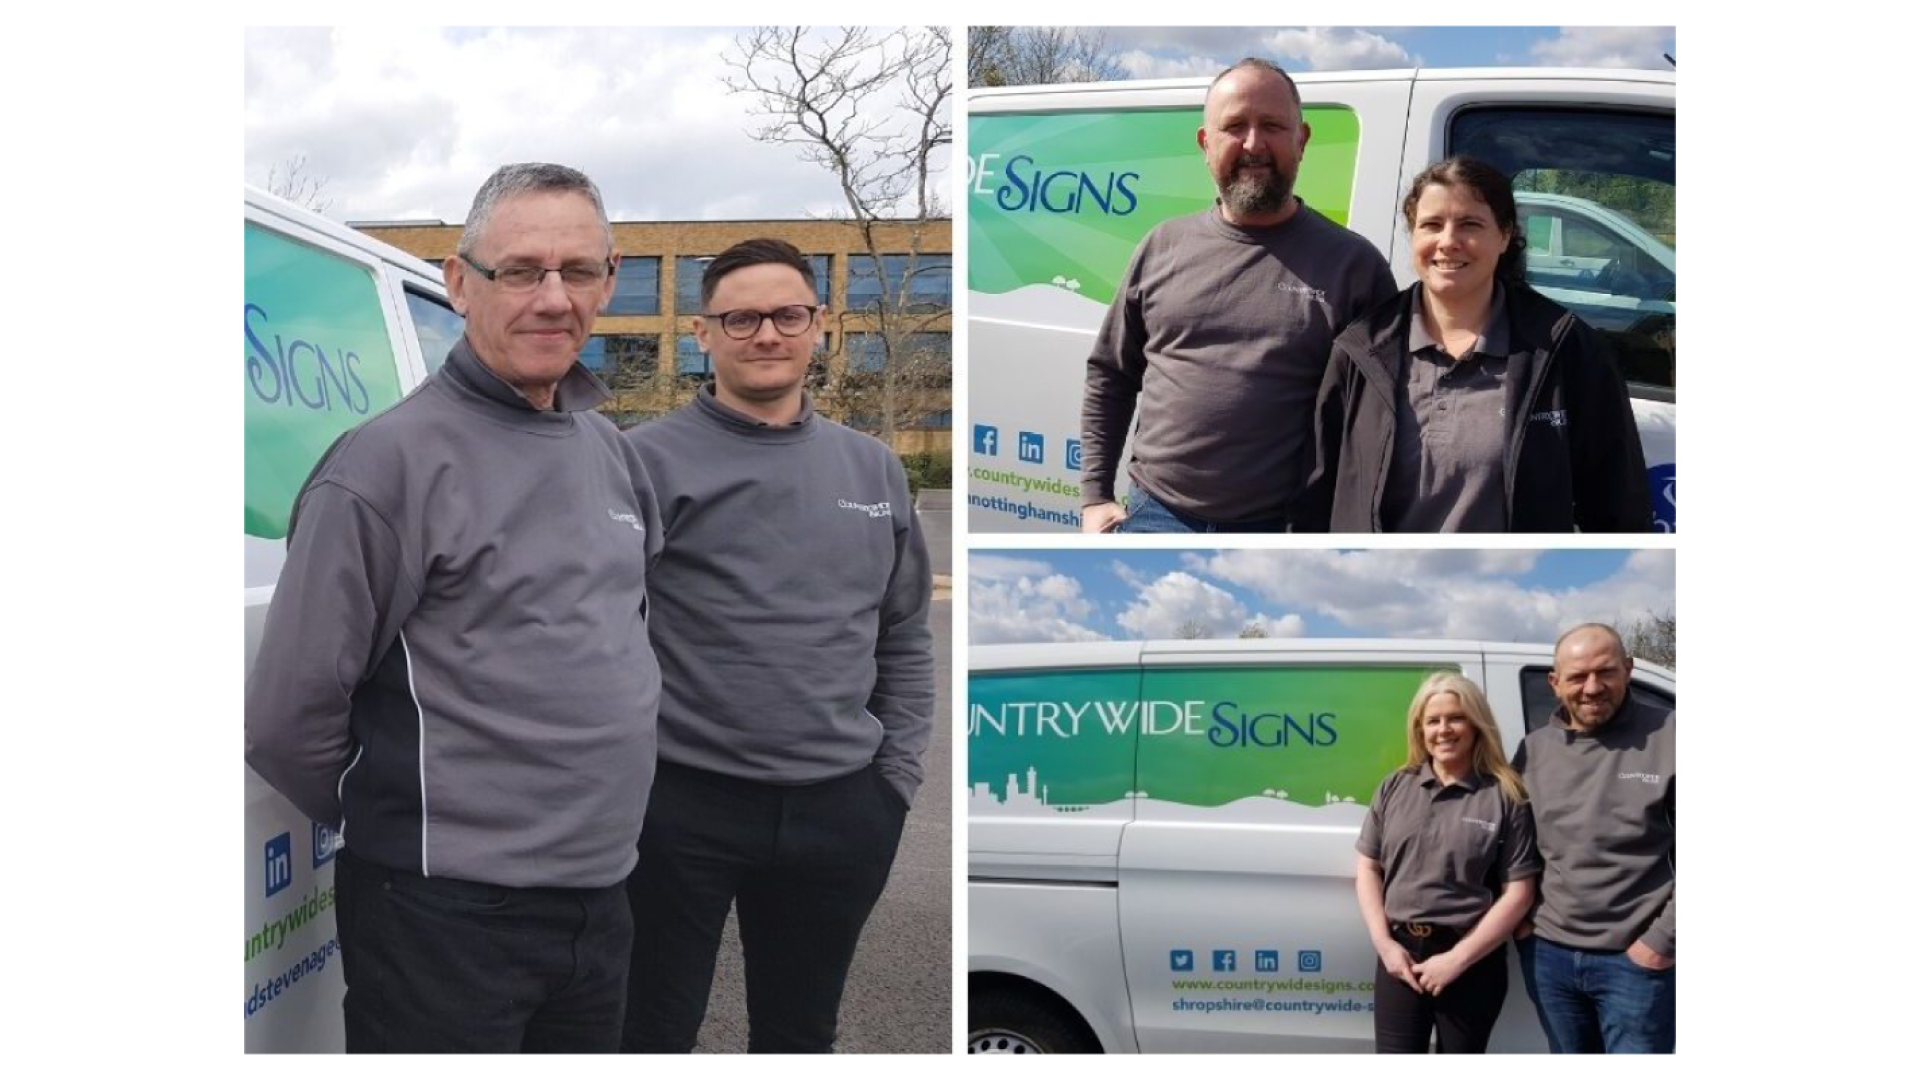 Countrywide Signs welcomes new franchisees